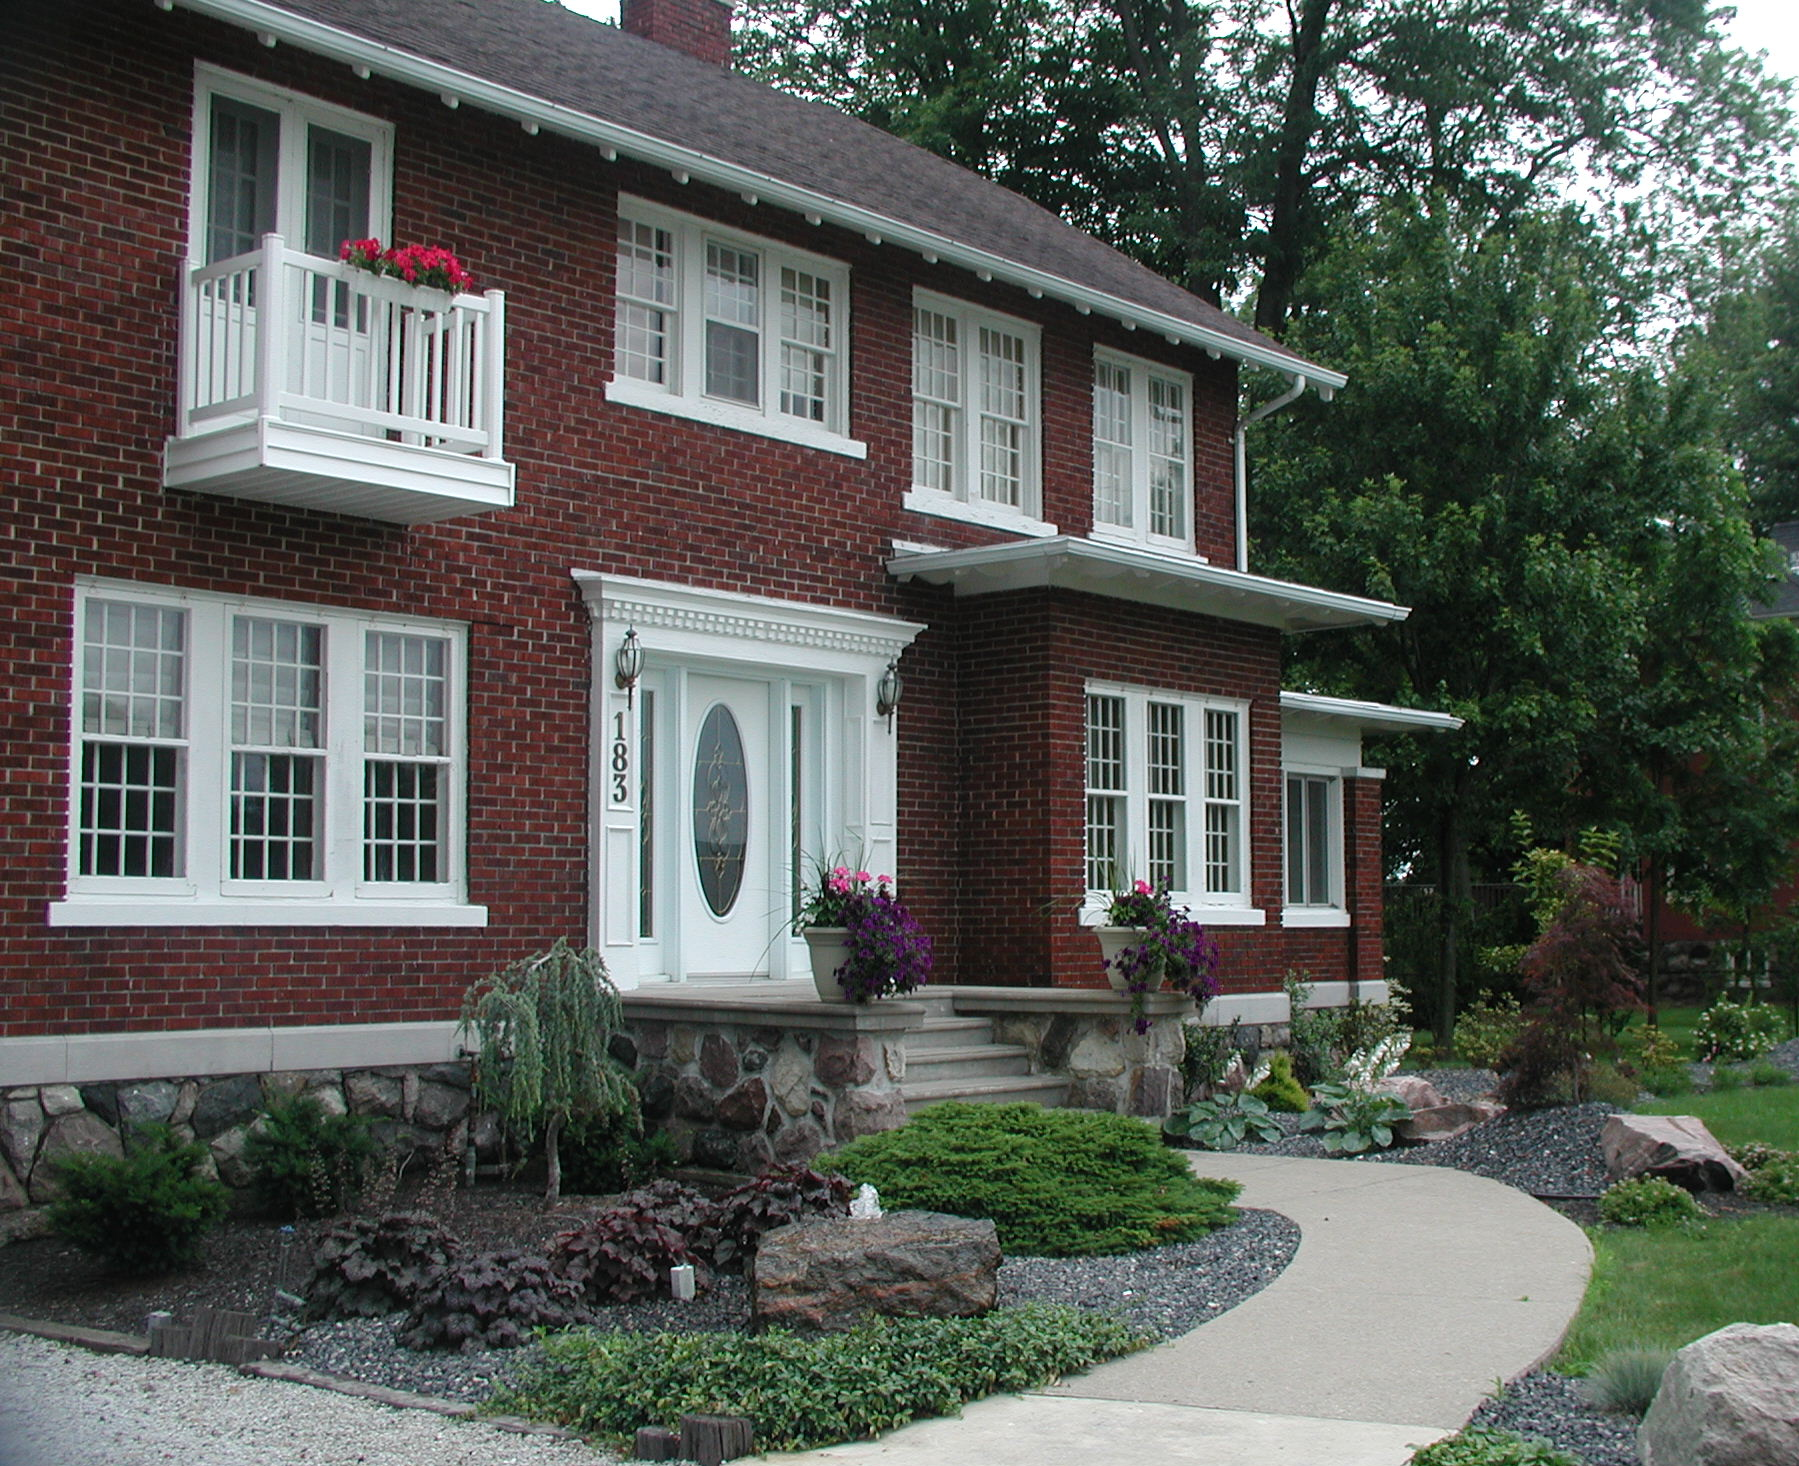 Garden Manor Bed & Breakfast